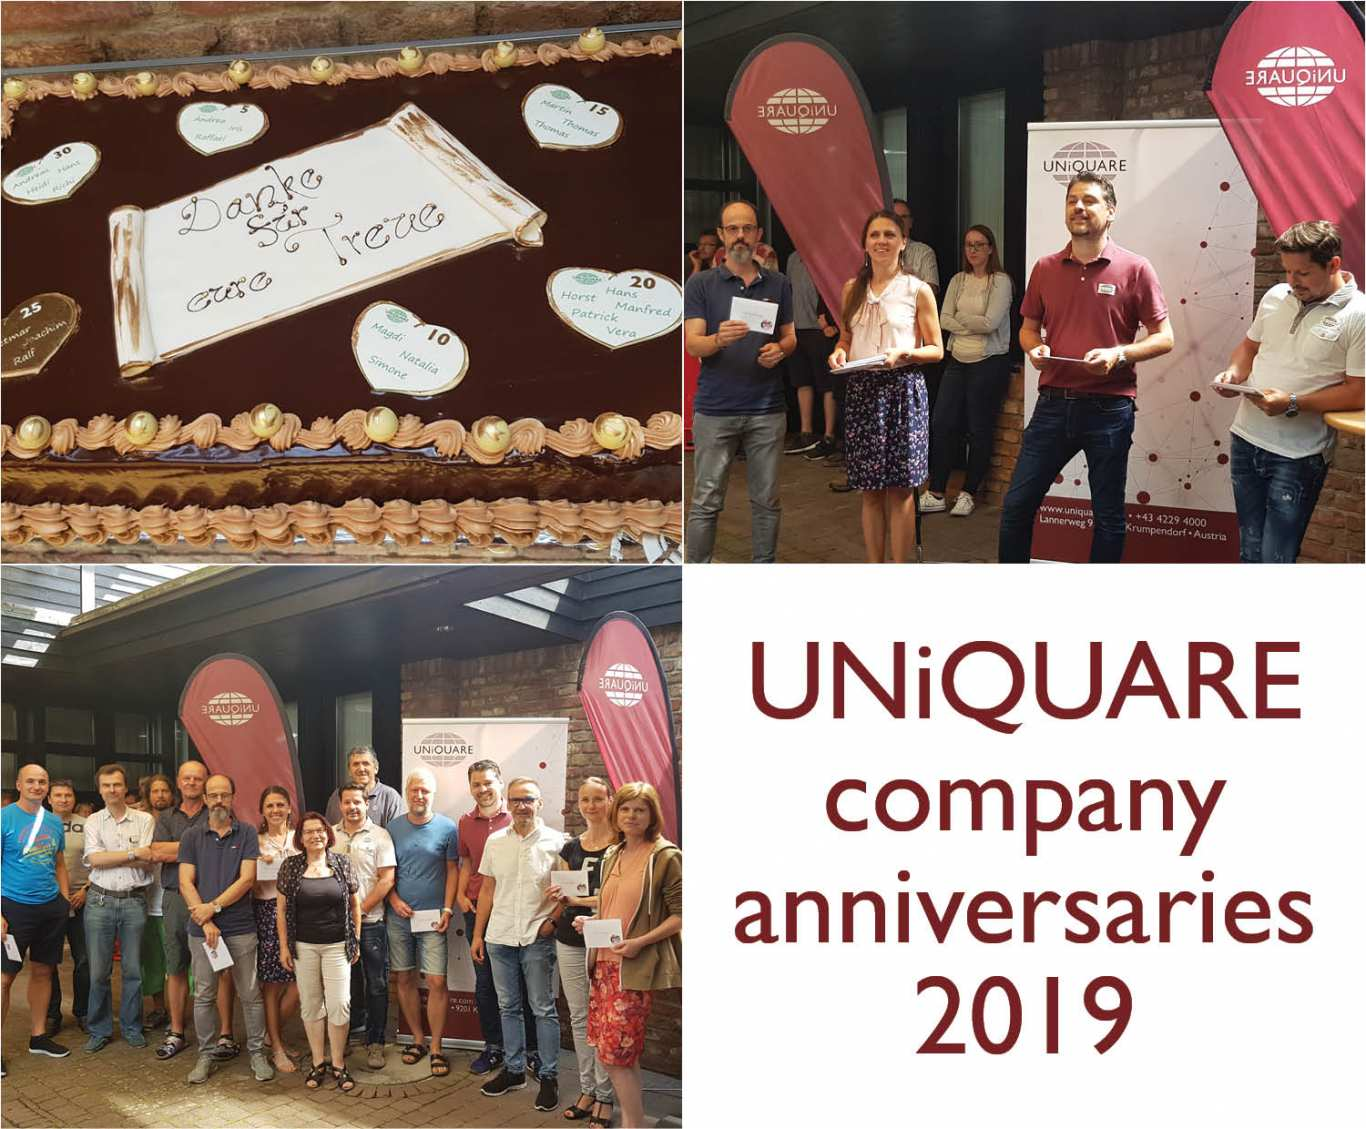 UNiQUARE honours 21 employees for their company anniversaries this year